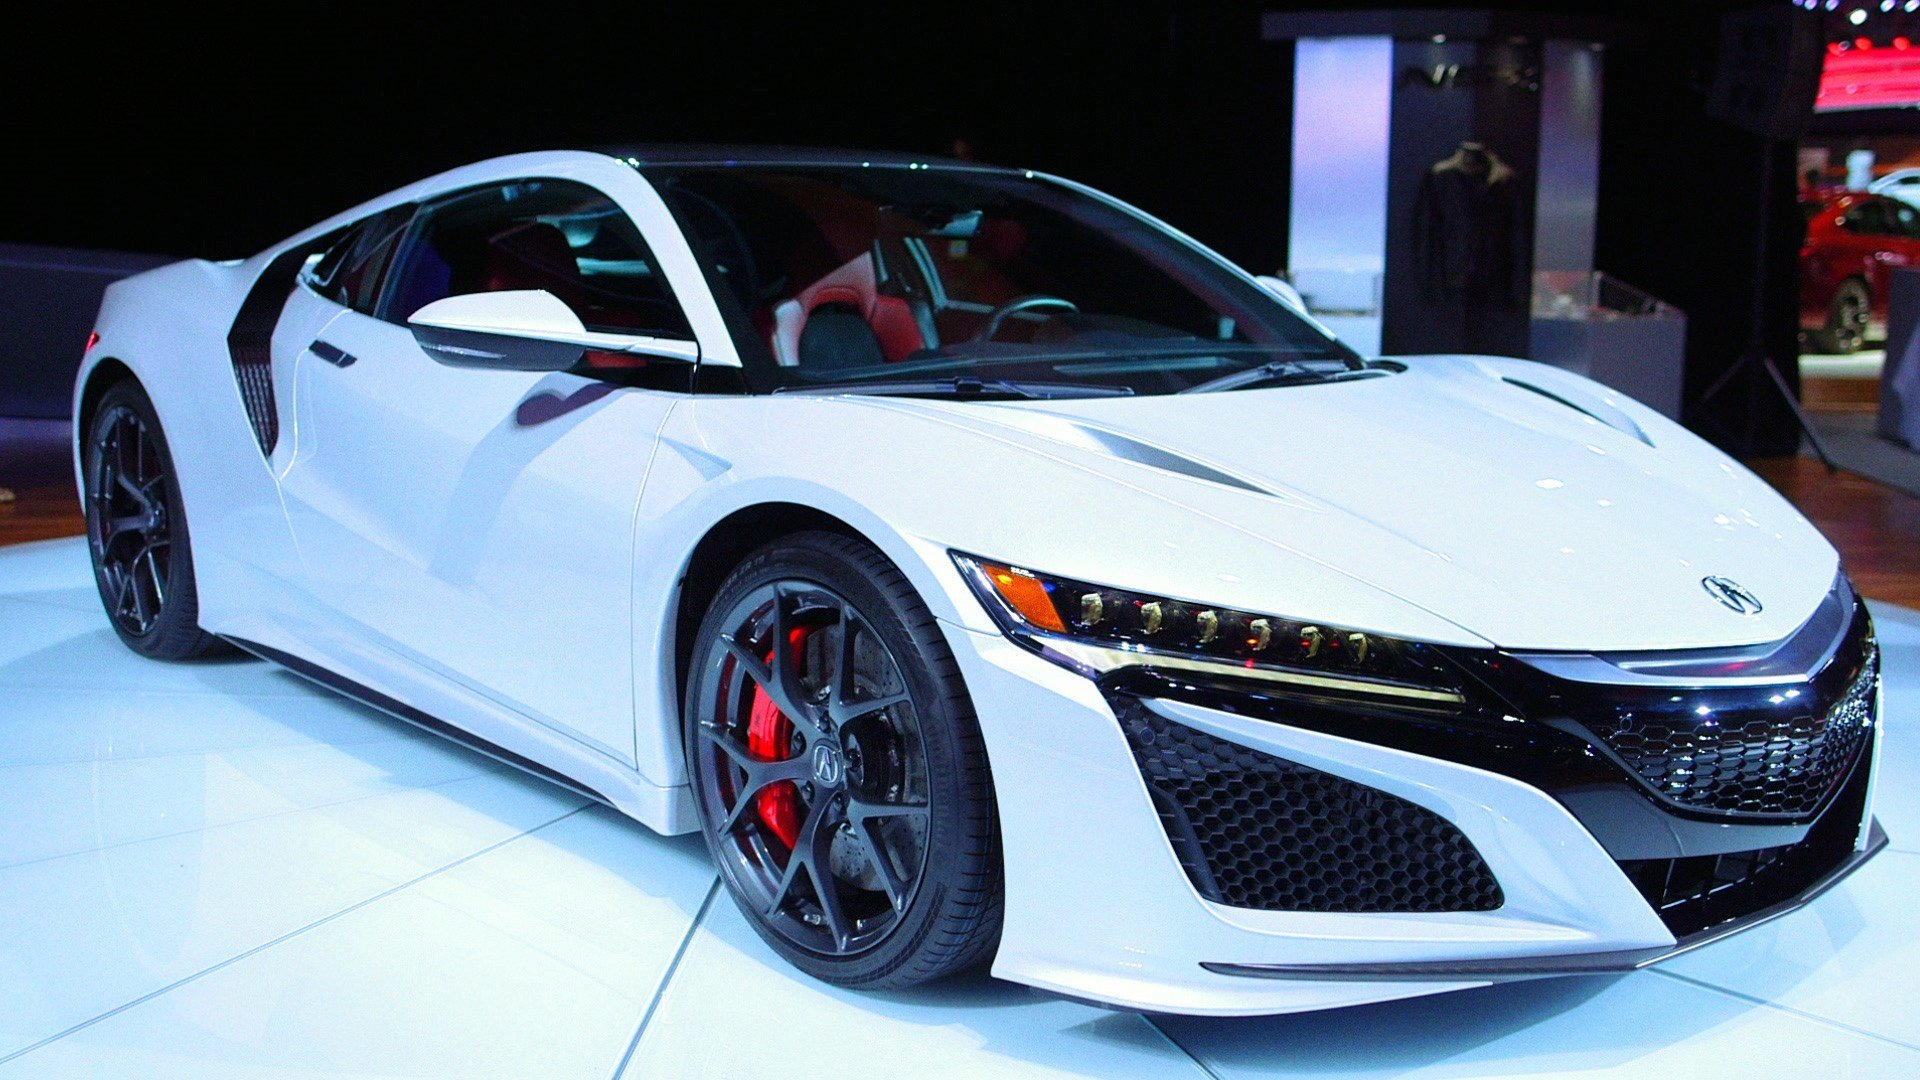 Latest Acura Nsx Is Polished And Speedy Sports Car Luxury – Bloomberg Free Download